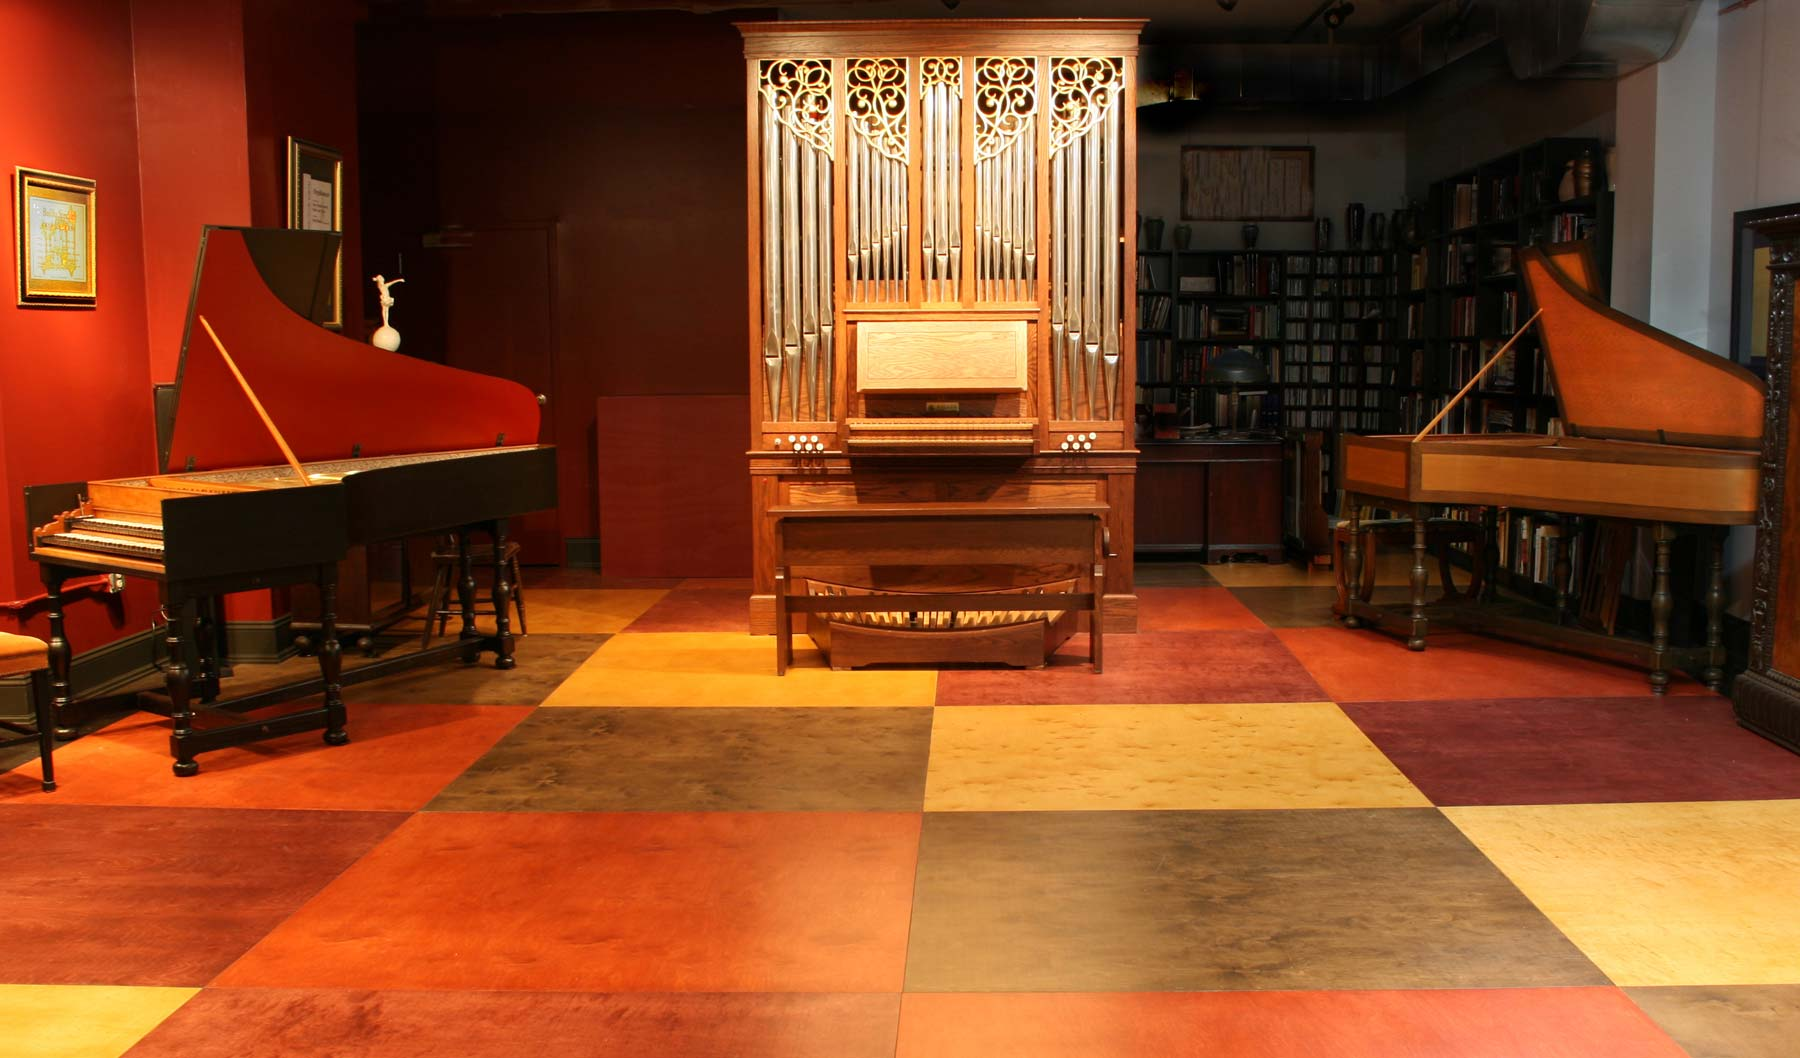 <organ and harpsichord in the music studio>